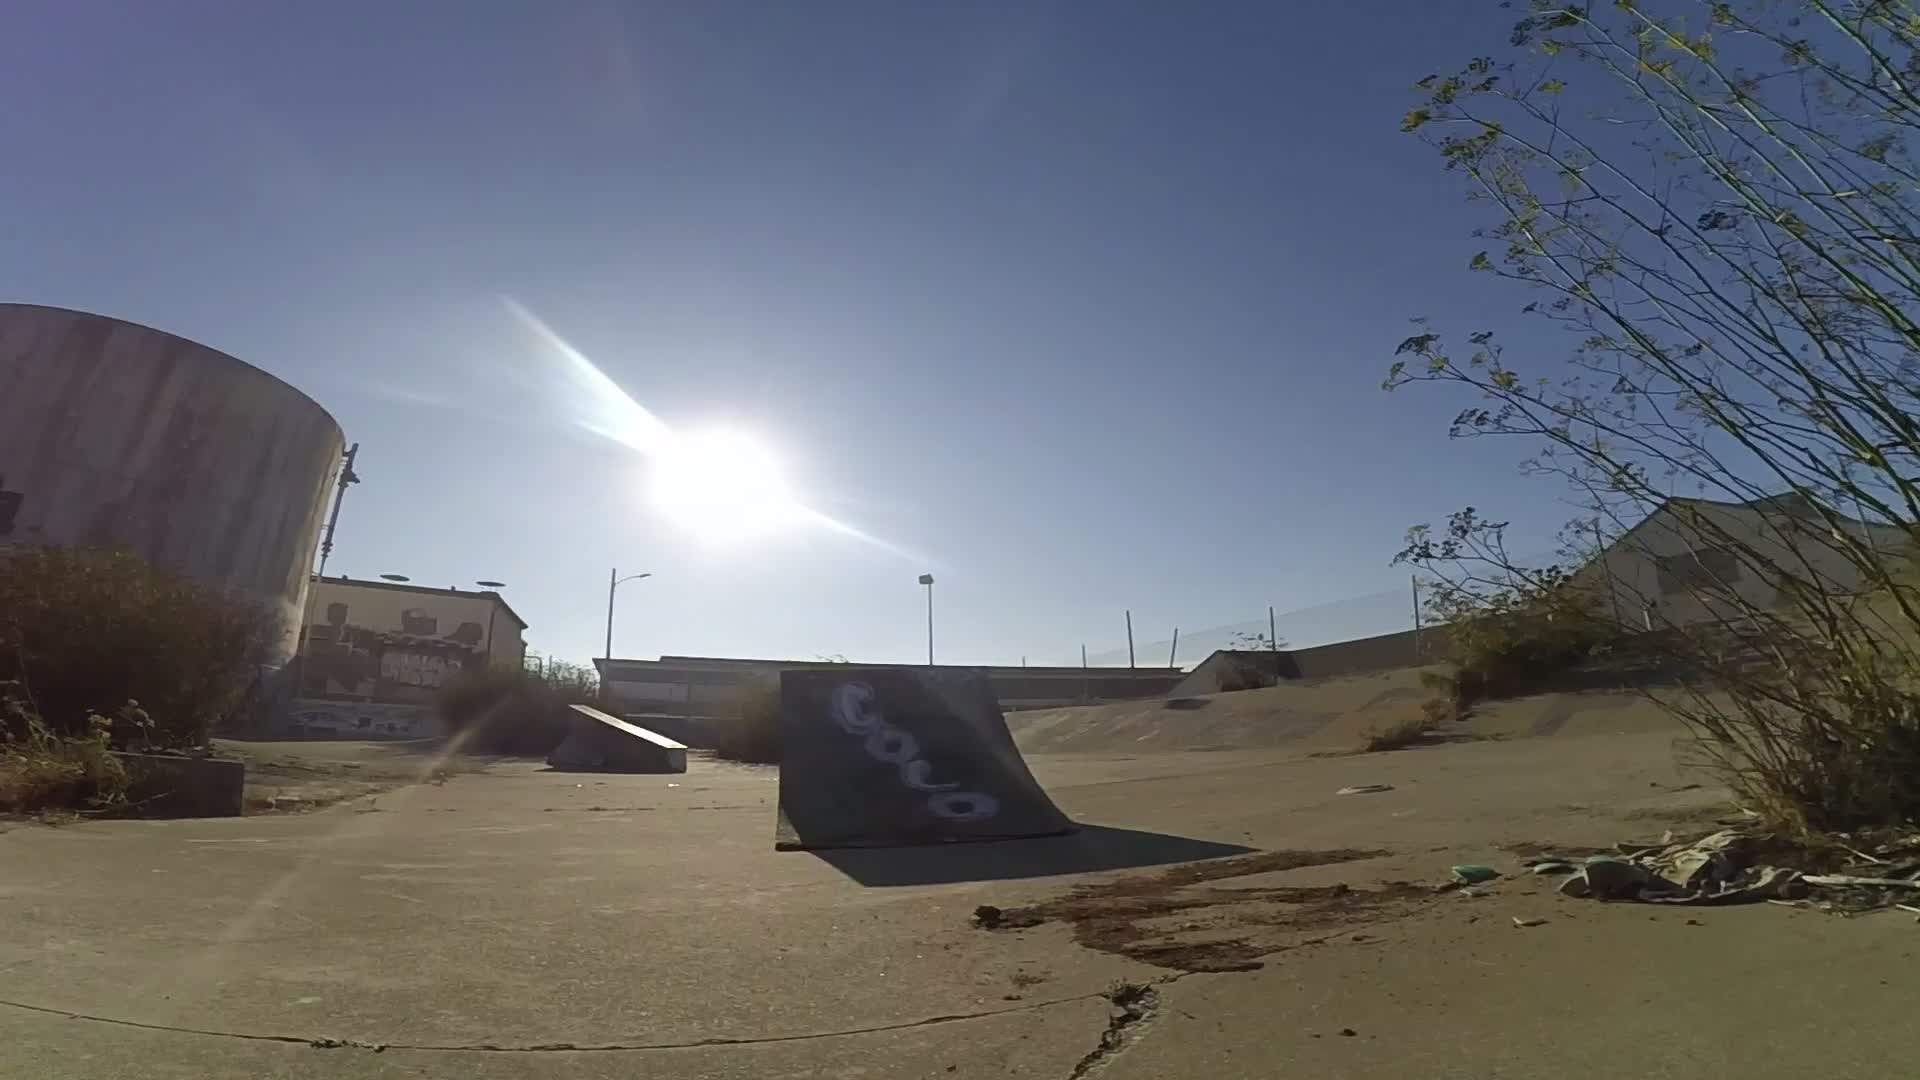 multicopter, unexpected, BMX freestyle GIFs